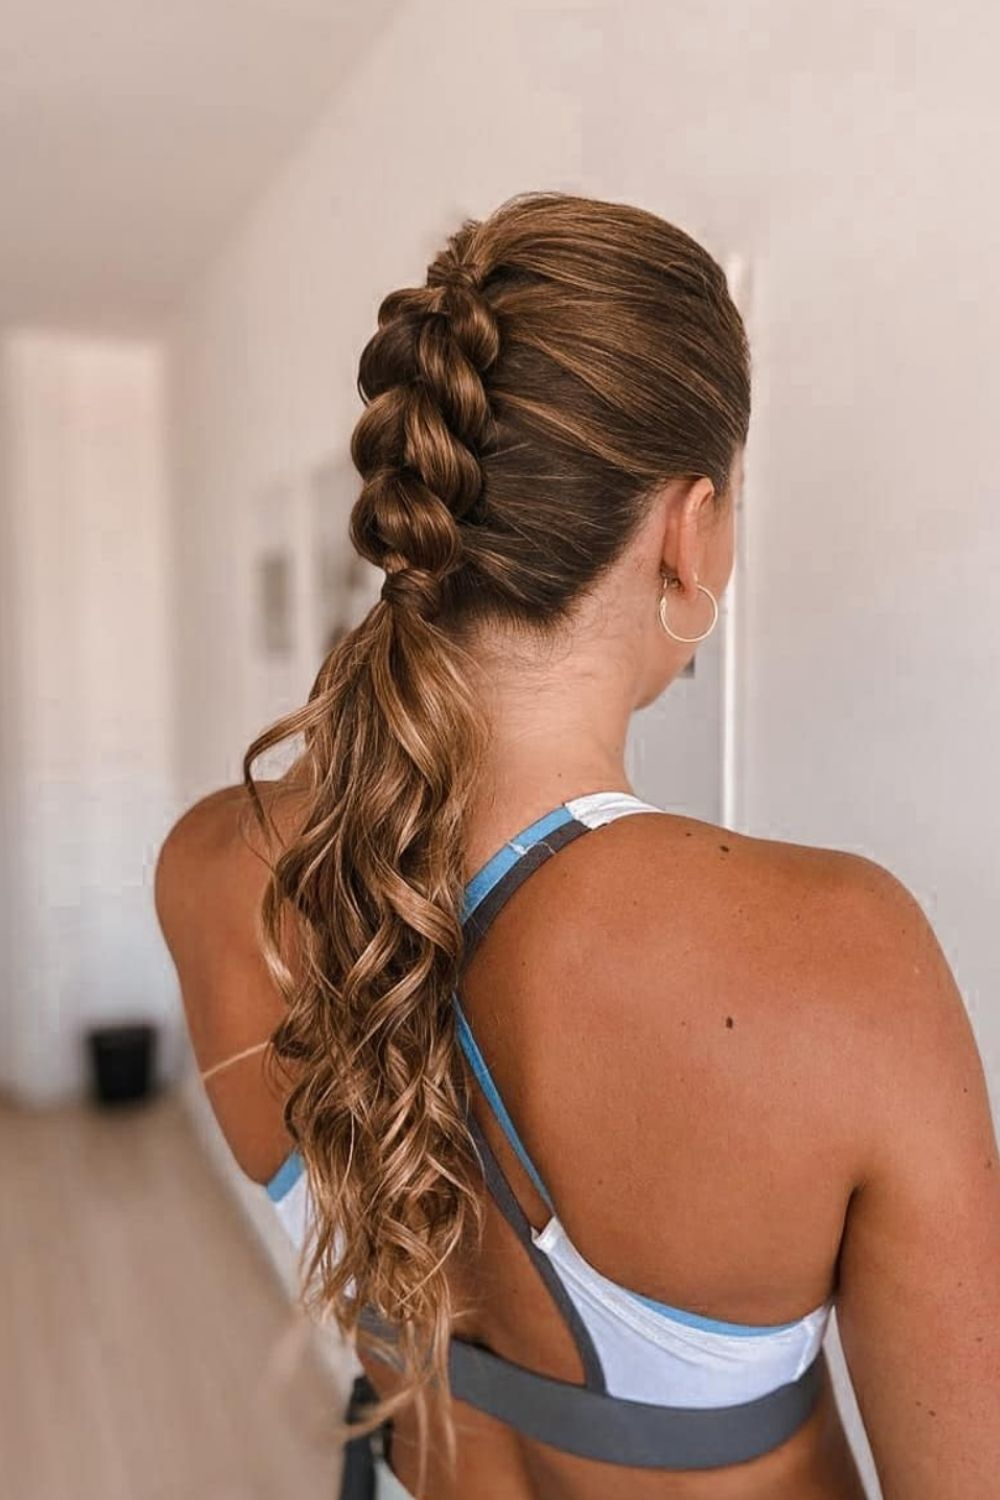 29 Easy Athletic Volleyball Hairstyles to look cute!